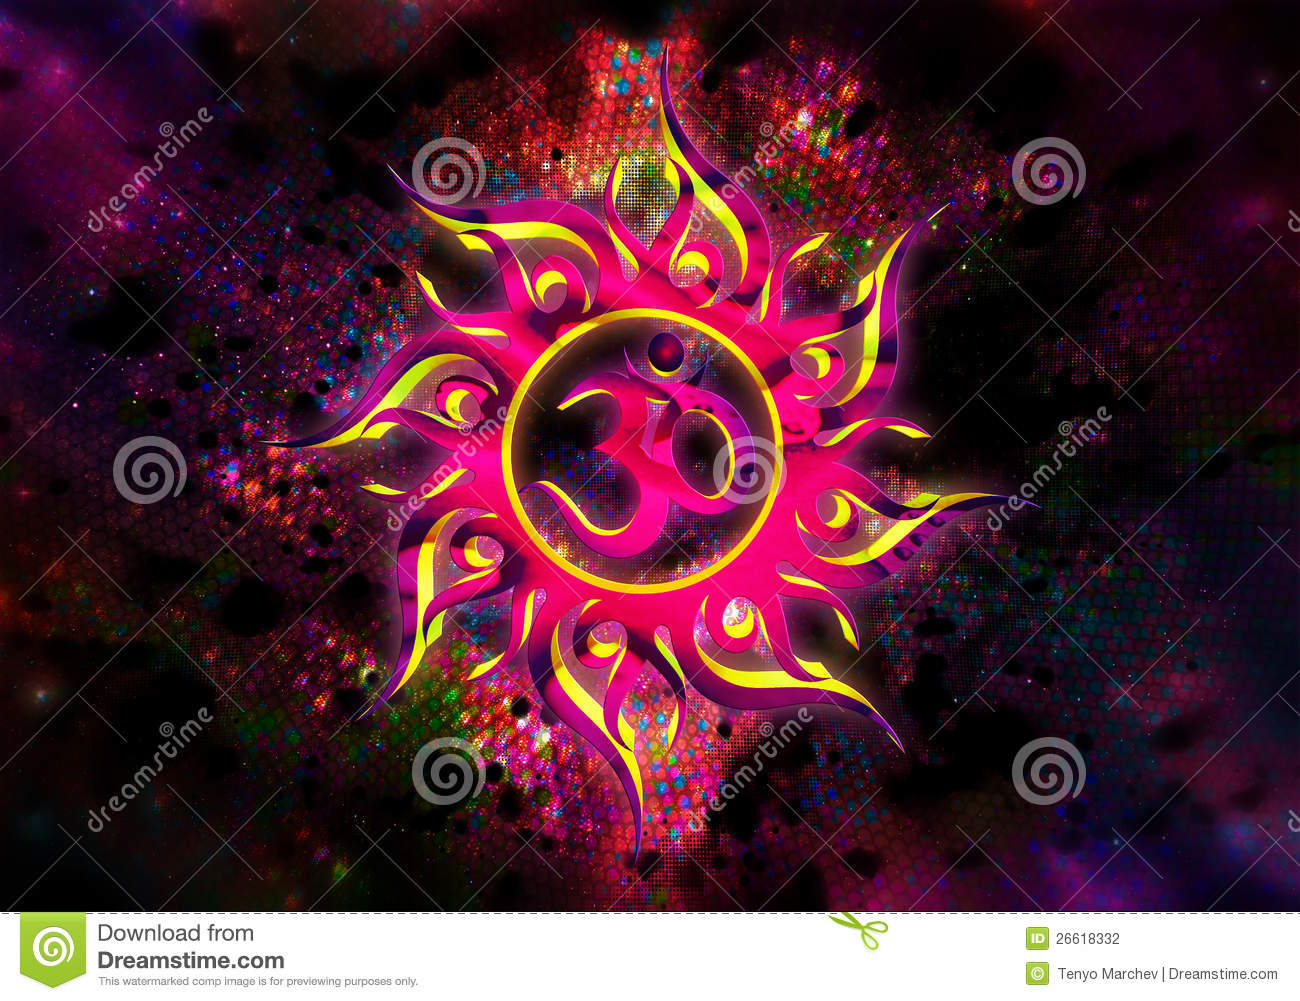 Goa Trance Abstraction Stock Photography - Image: 26618332